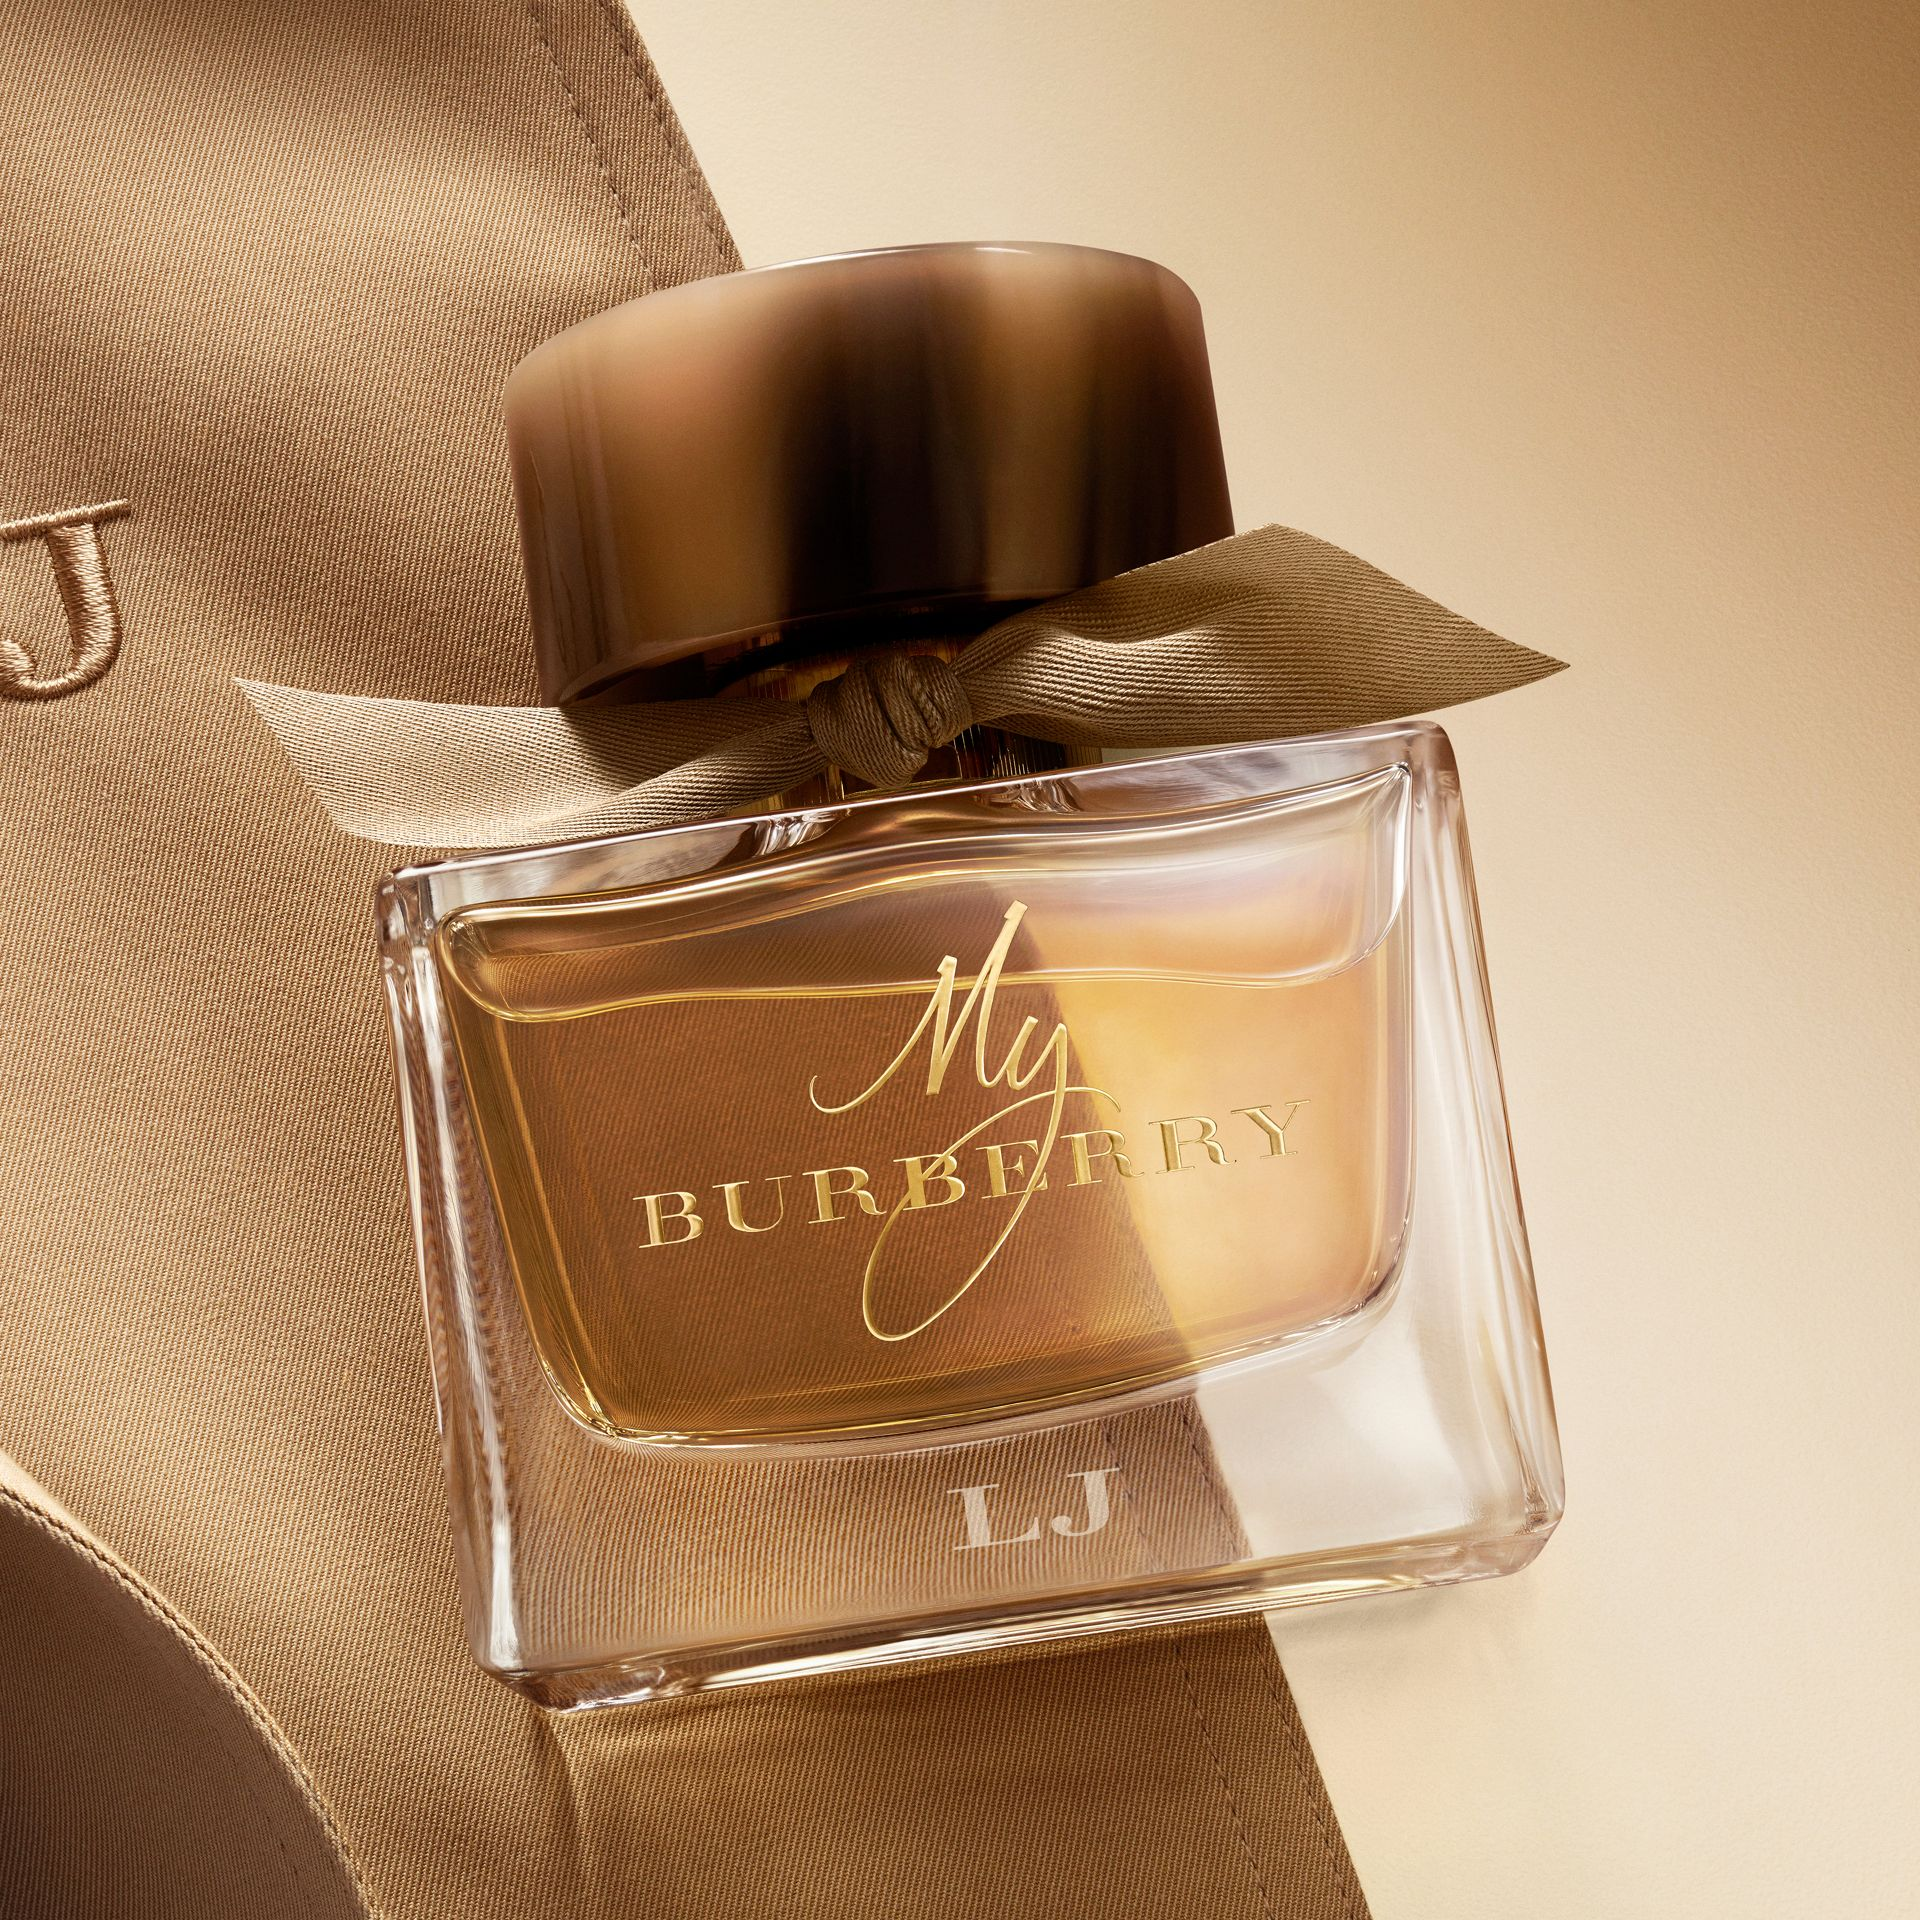 My Burberry Eau de Parfum 900 ml in der Sammleredition - Galerie-Bild 5